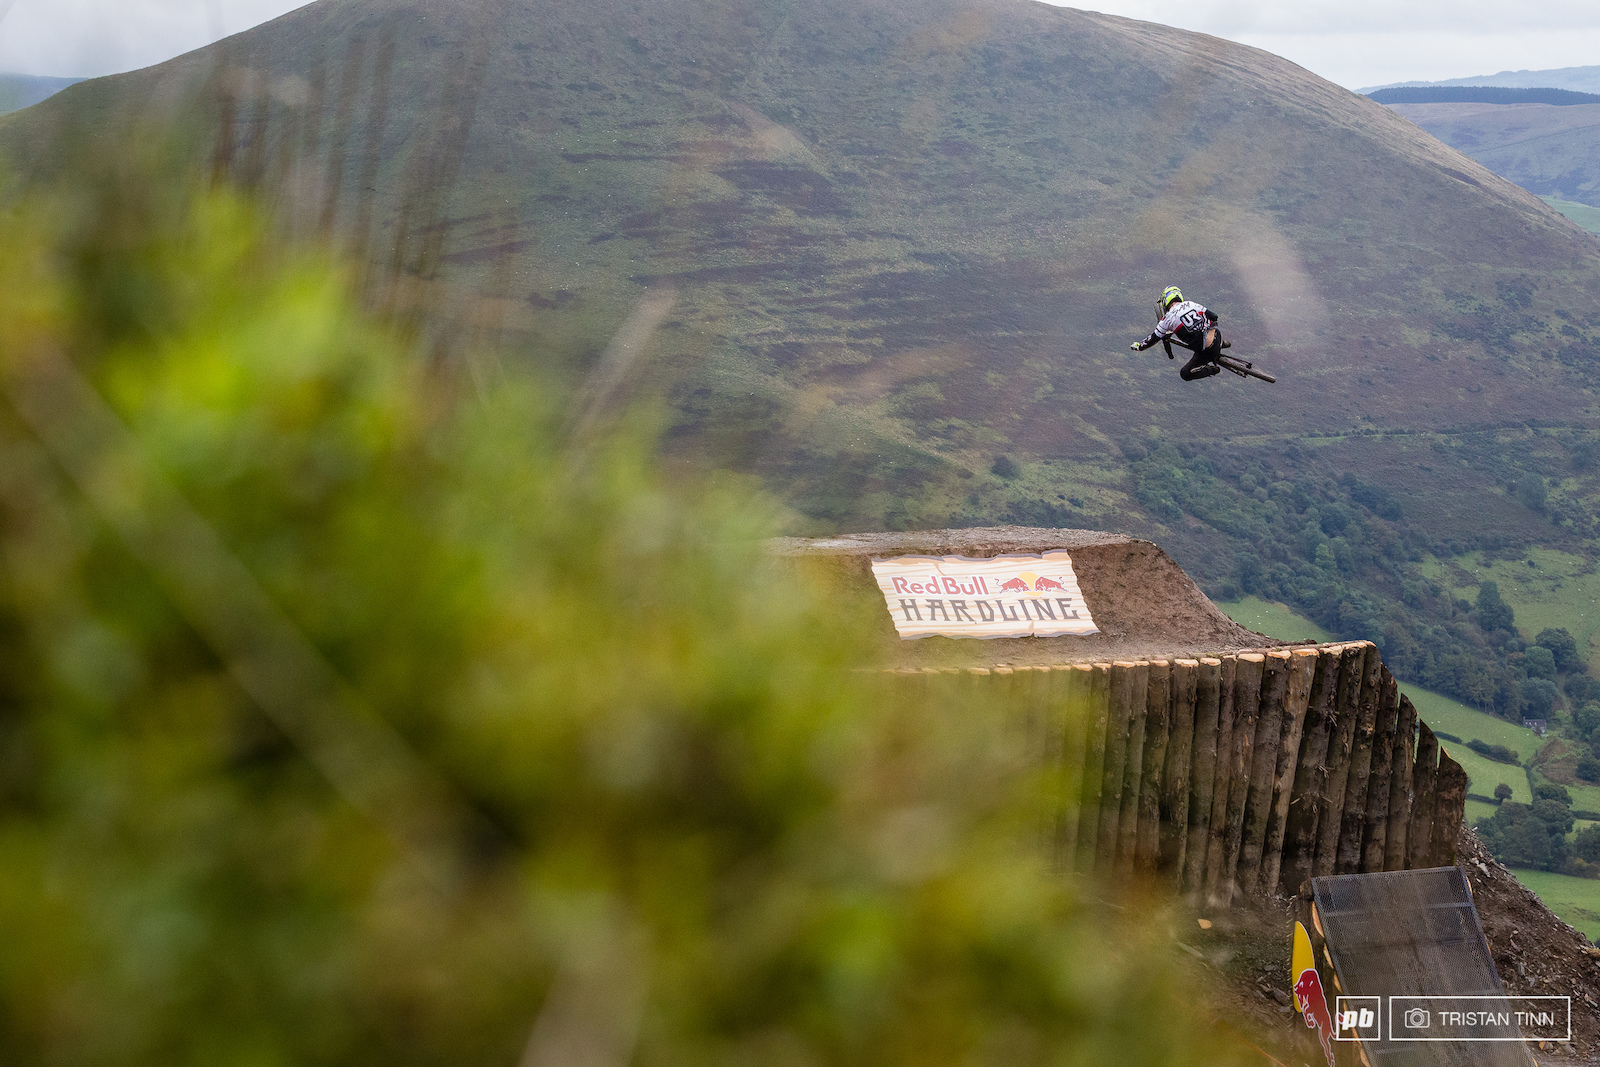 Sam Reynolds tames it with style